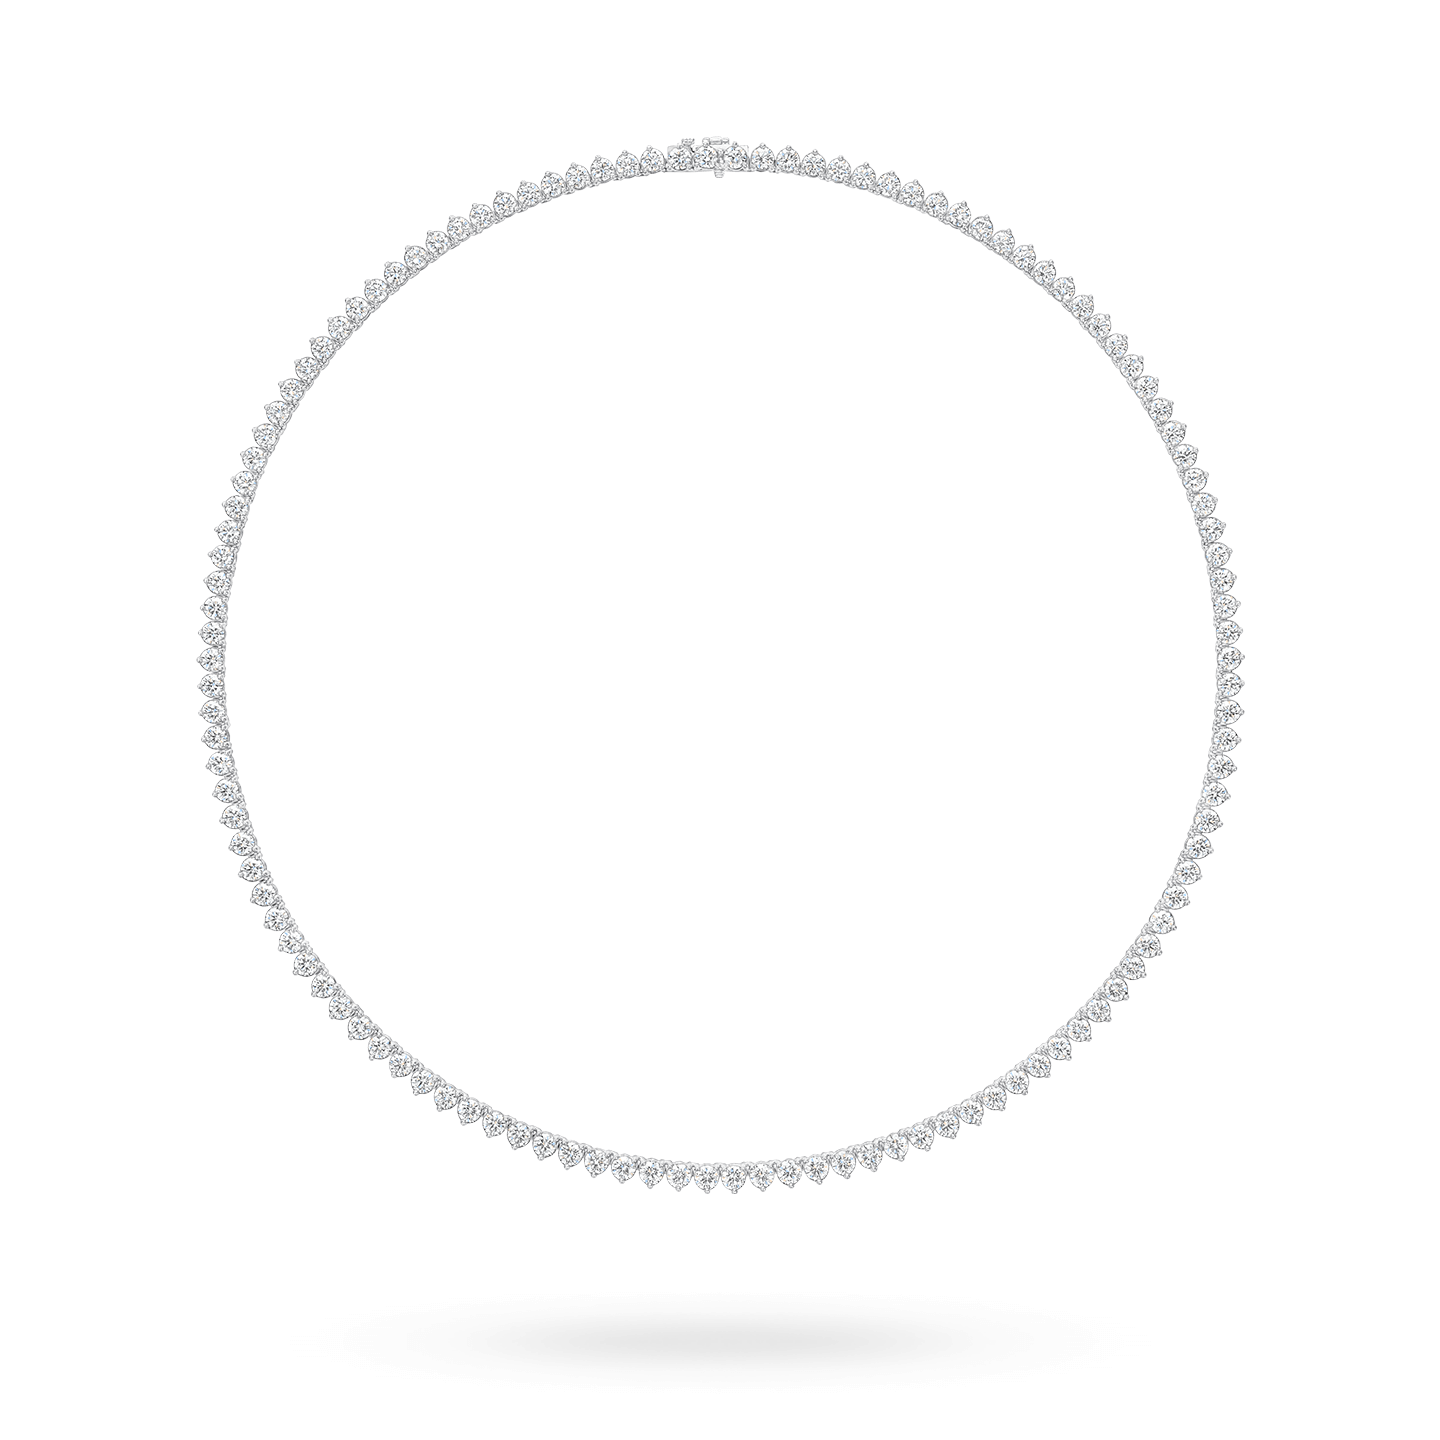 Round Brilliant Straightline Diamond Necklace, Product Image 1